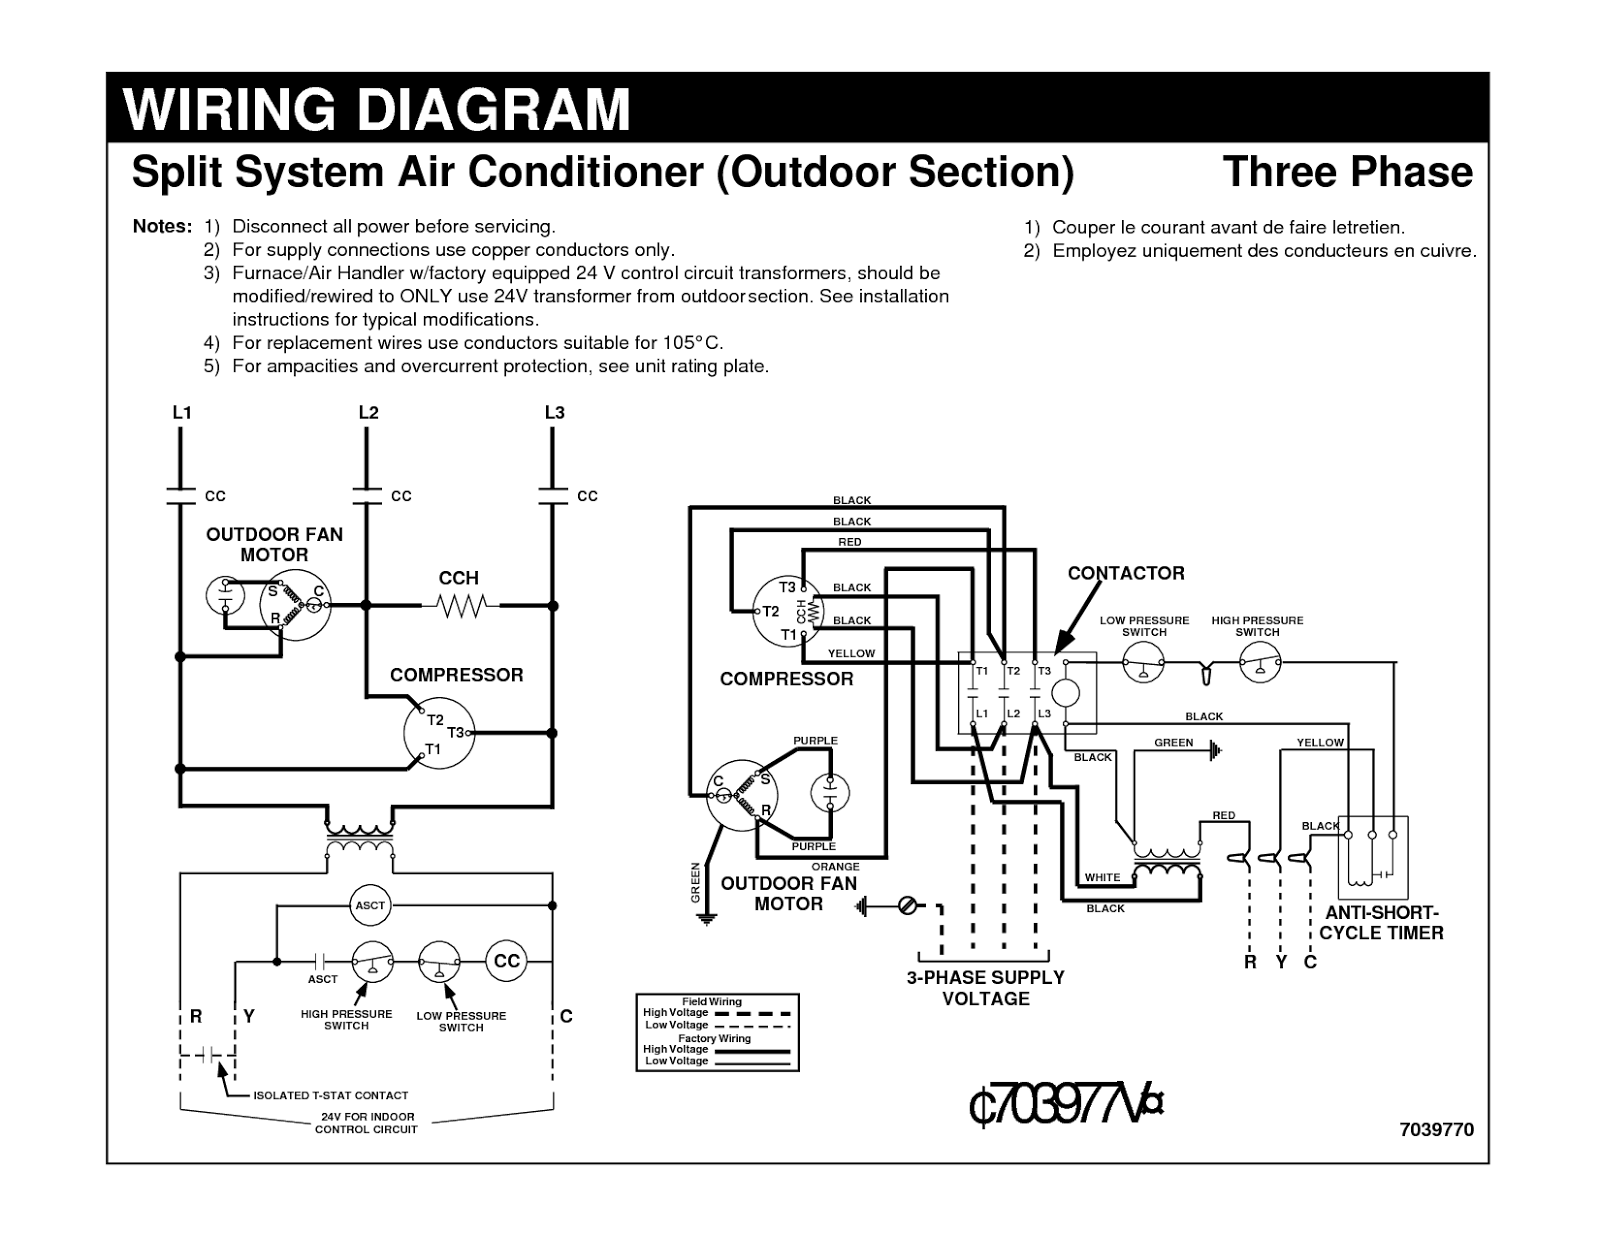 hino alternator wiring diagram with How To Read Electrical Wiring Diagrams on Elec likewise Honda Cx500 C Motorcycle 1979 1981 And in addition Volkswagen Diy Tips For Changing Fuses also How To Replace An Alternator furthermore 2009 2010 Toyota Corolla Electrical Wiring Diagrams.